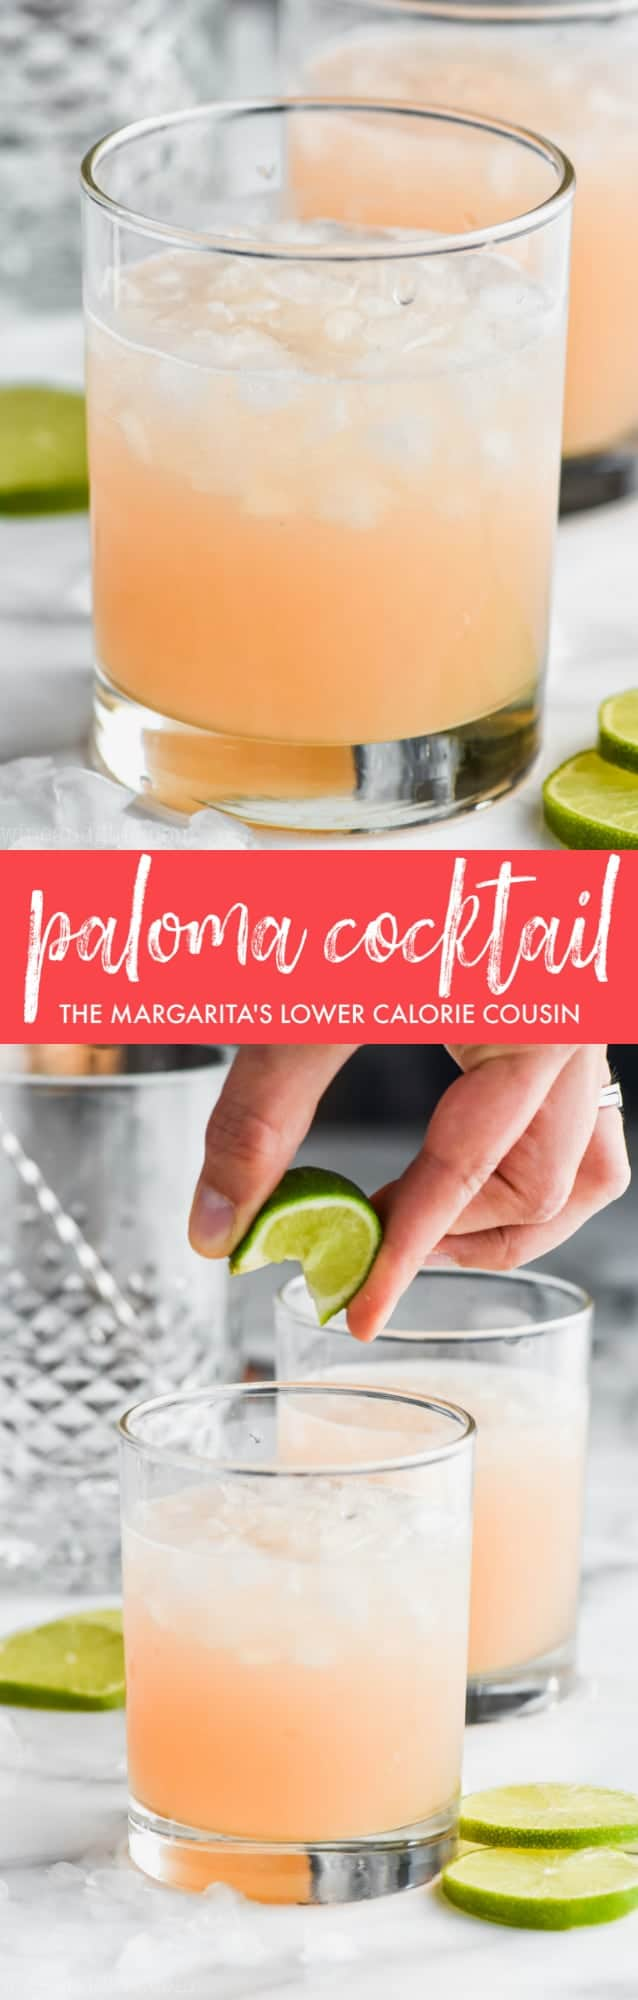 collage of photos of paloma cocktail